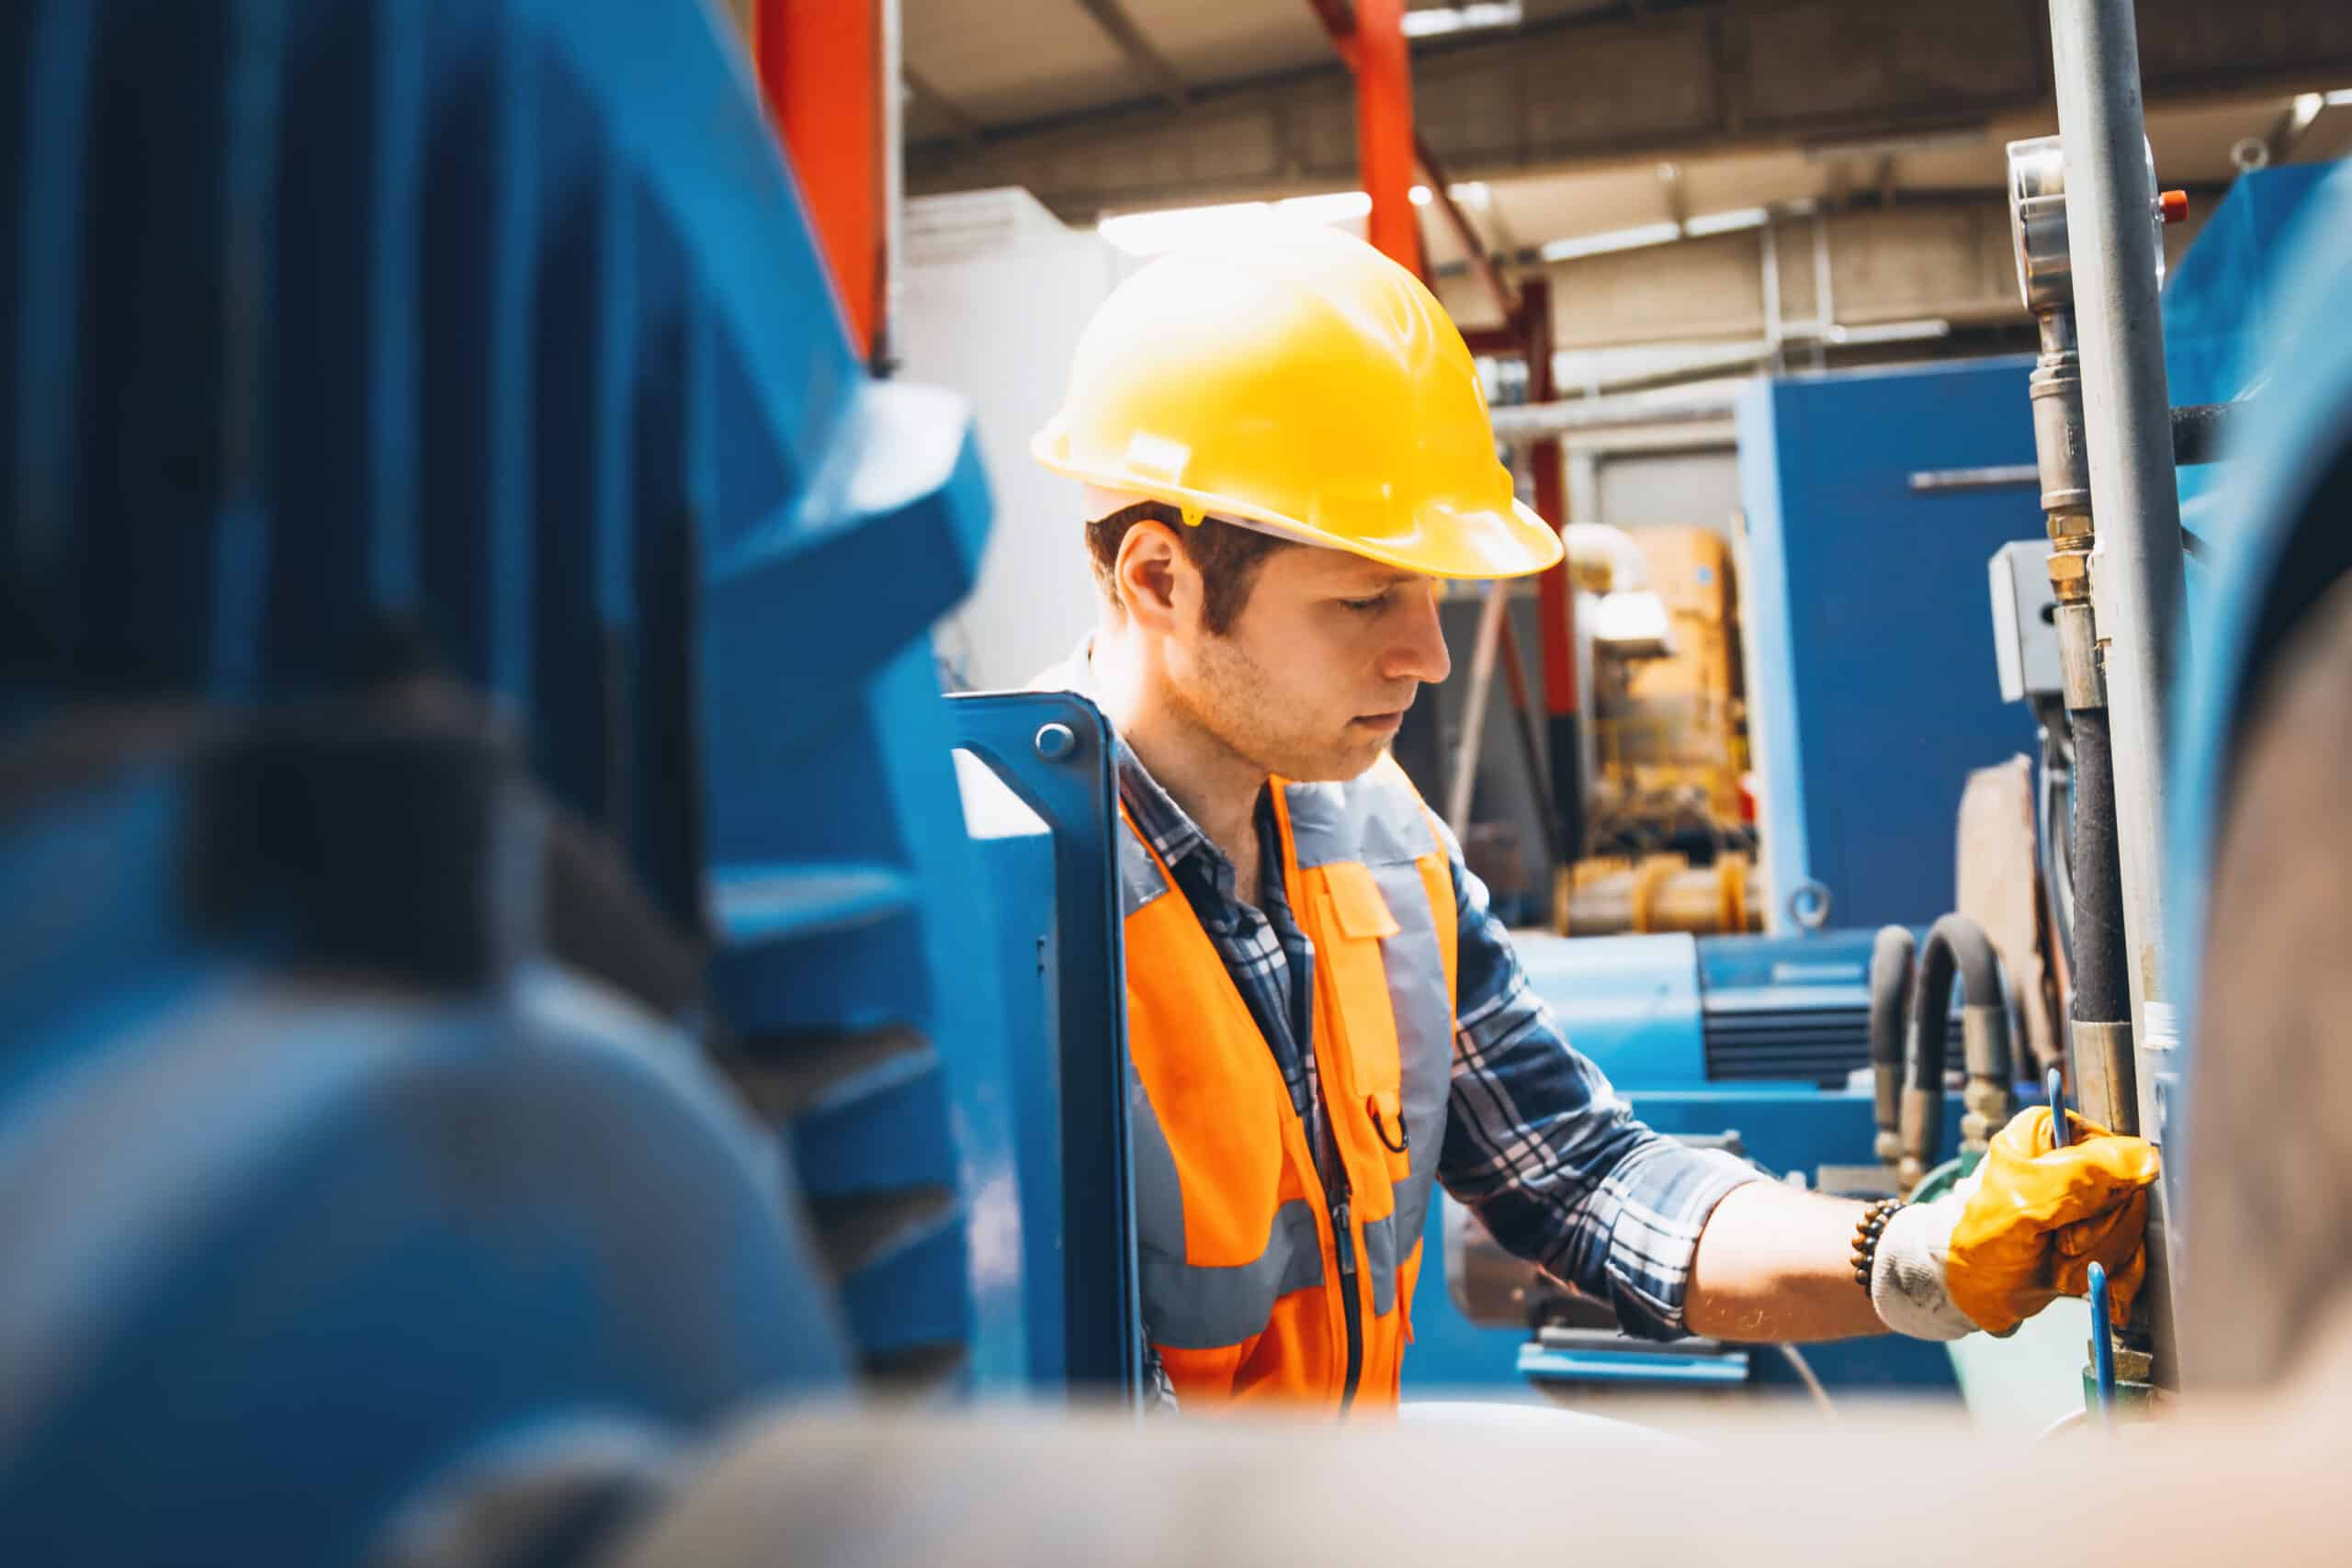 Portrait of young manual worker man working with ball valves in factory